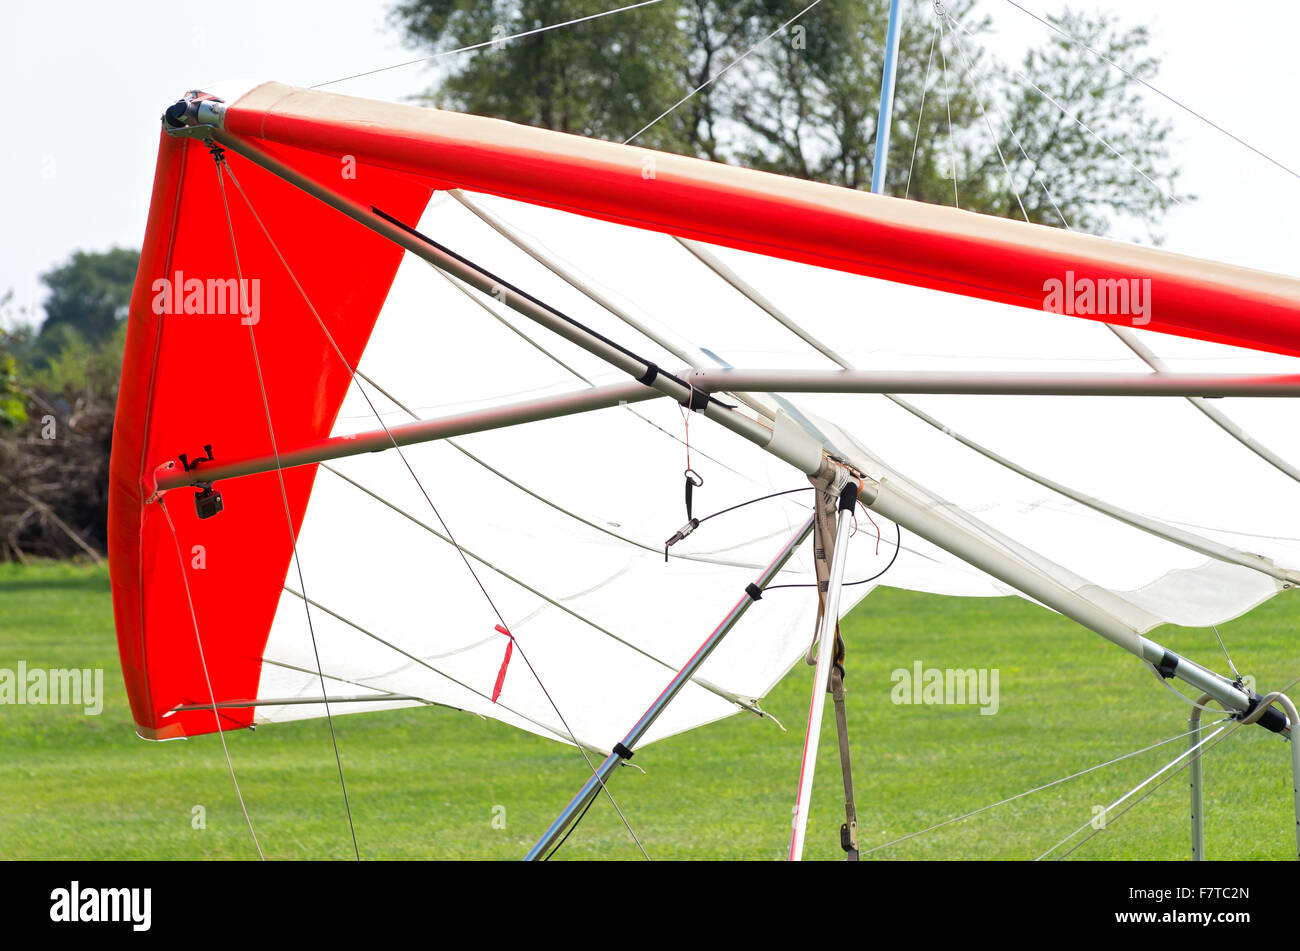 hang glider wing or sail airframe or triangle control frame and harness stationary on ground - Stock Image